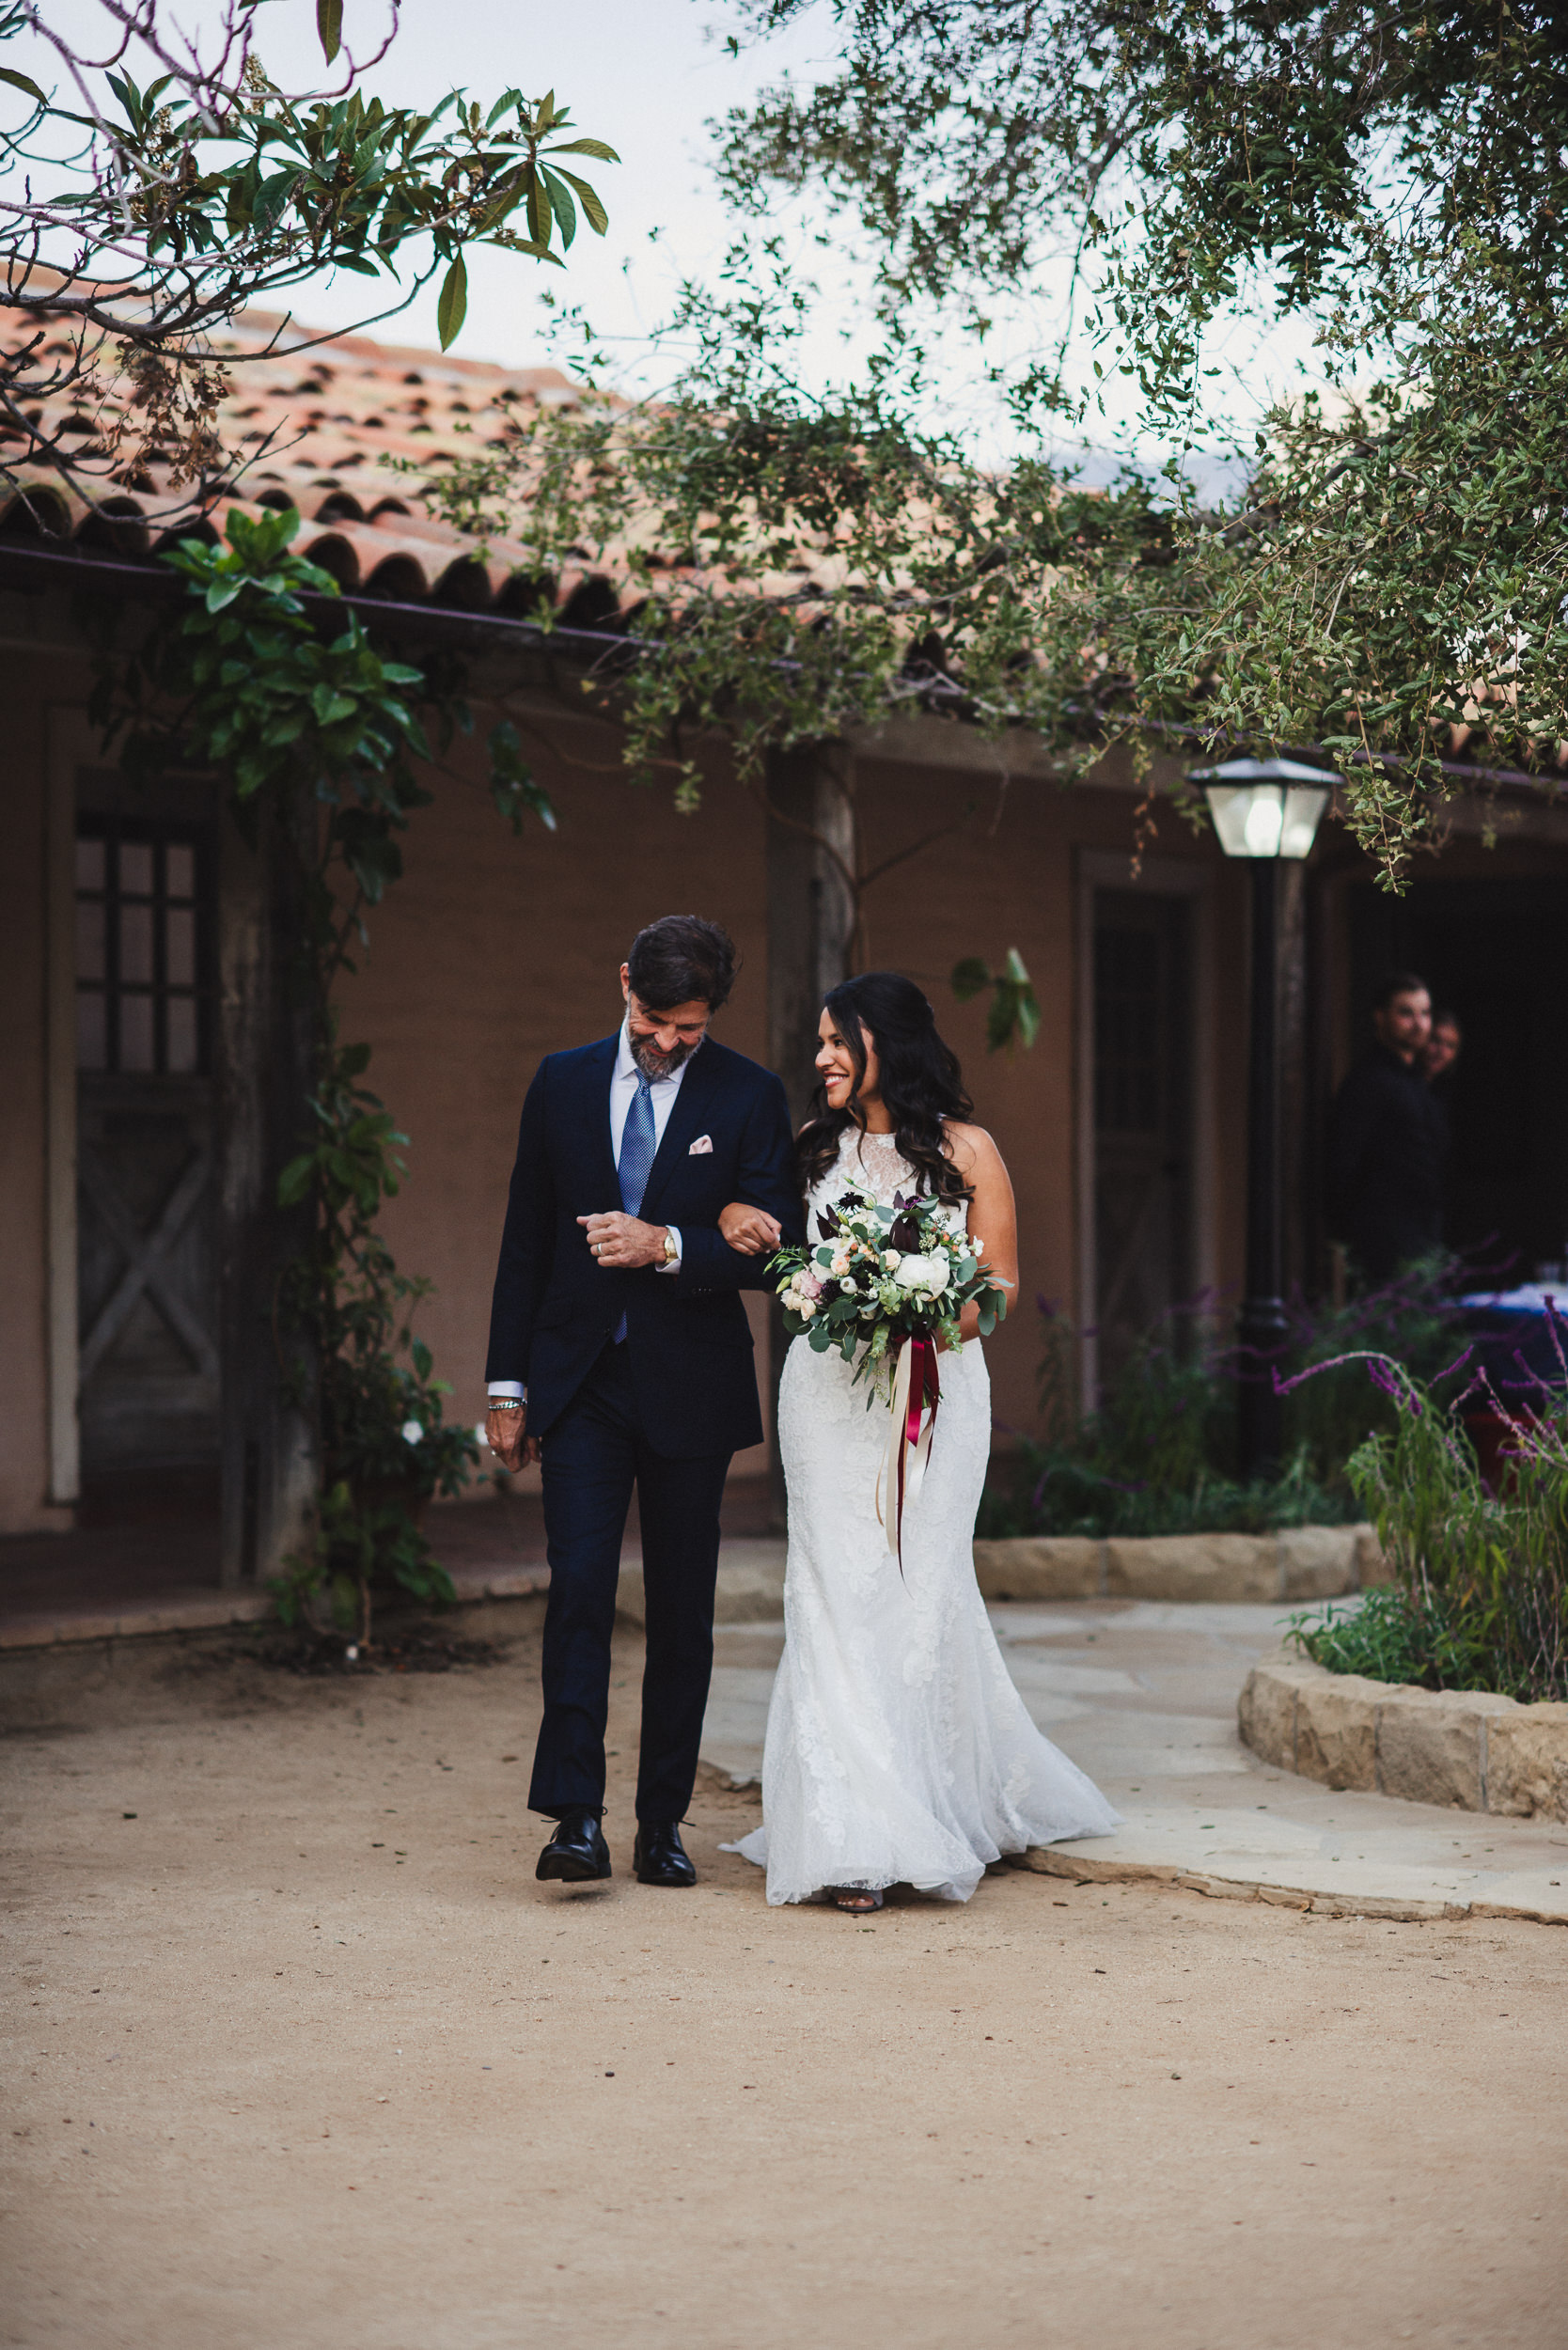 sSarah + Kev - Santa Barbara Historic Museum - 07 Ceremony-53.jpg